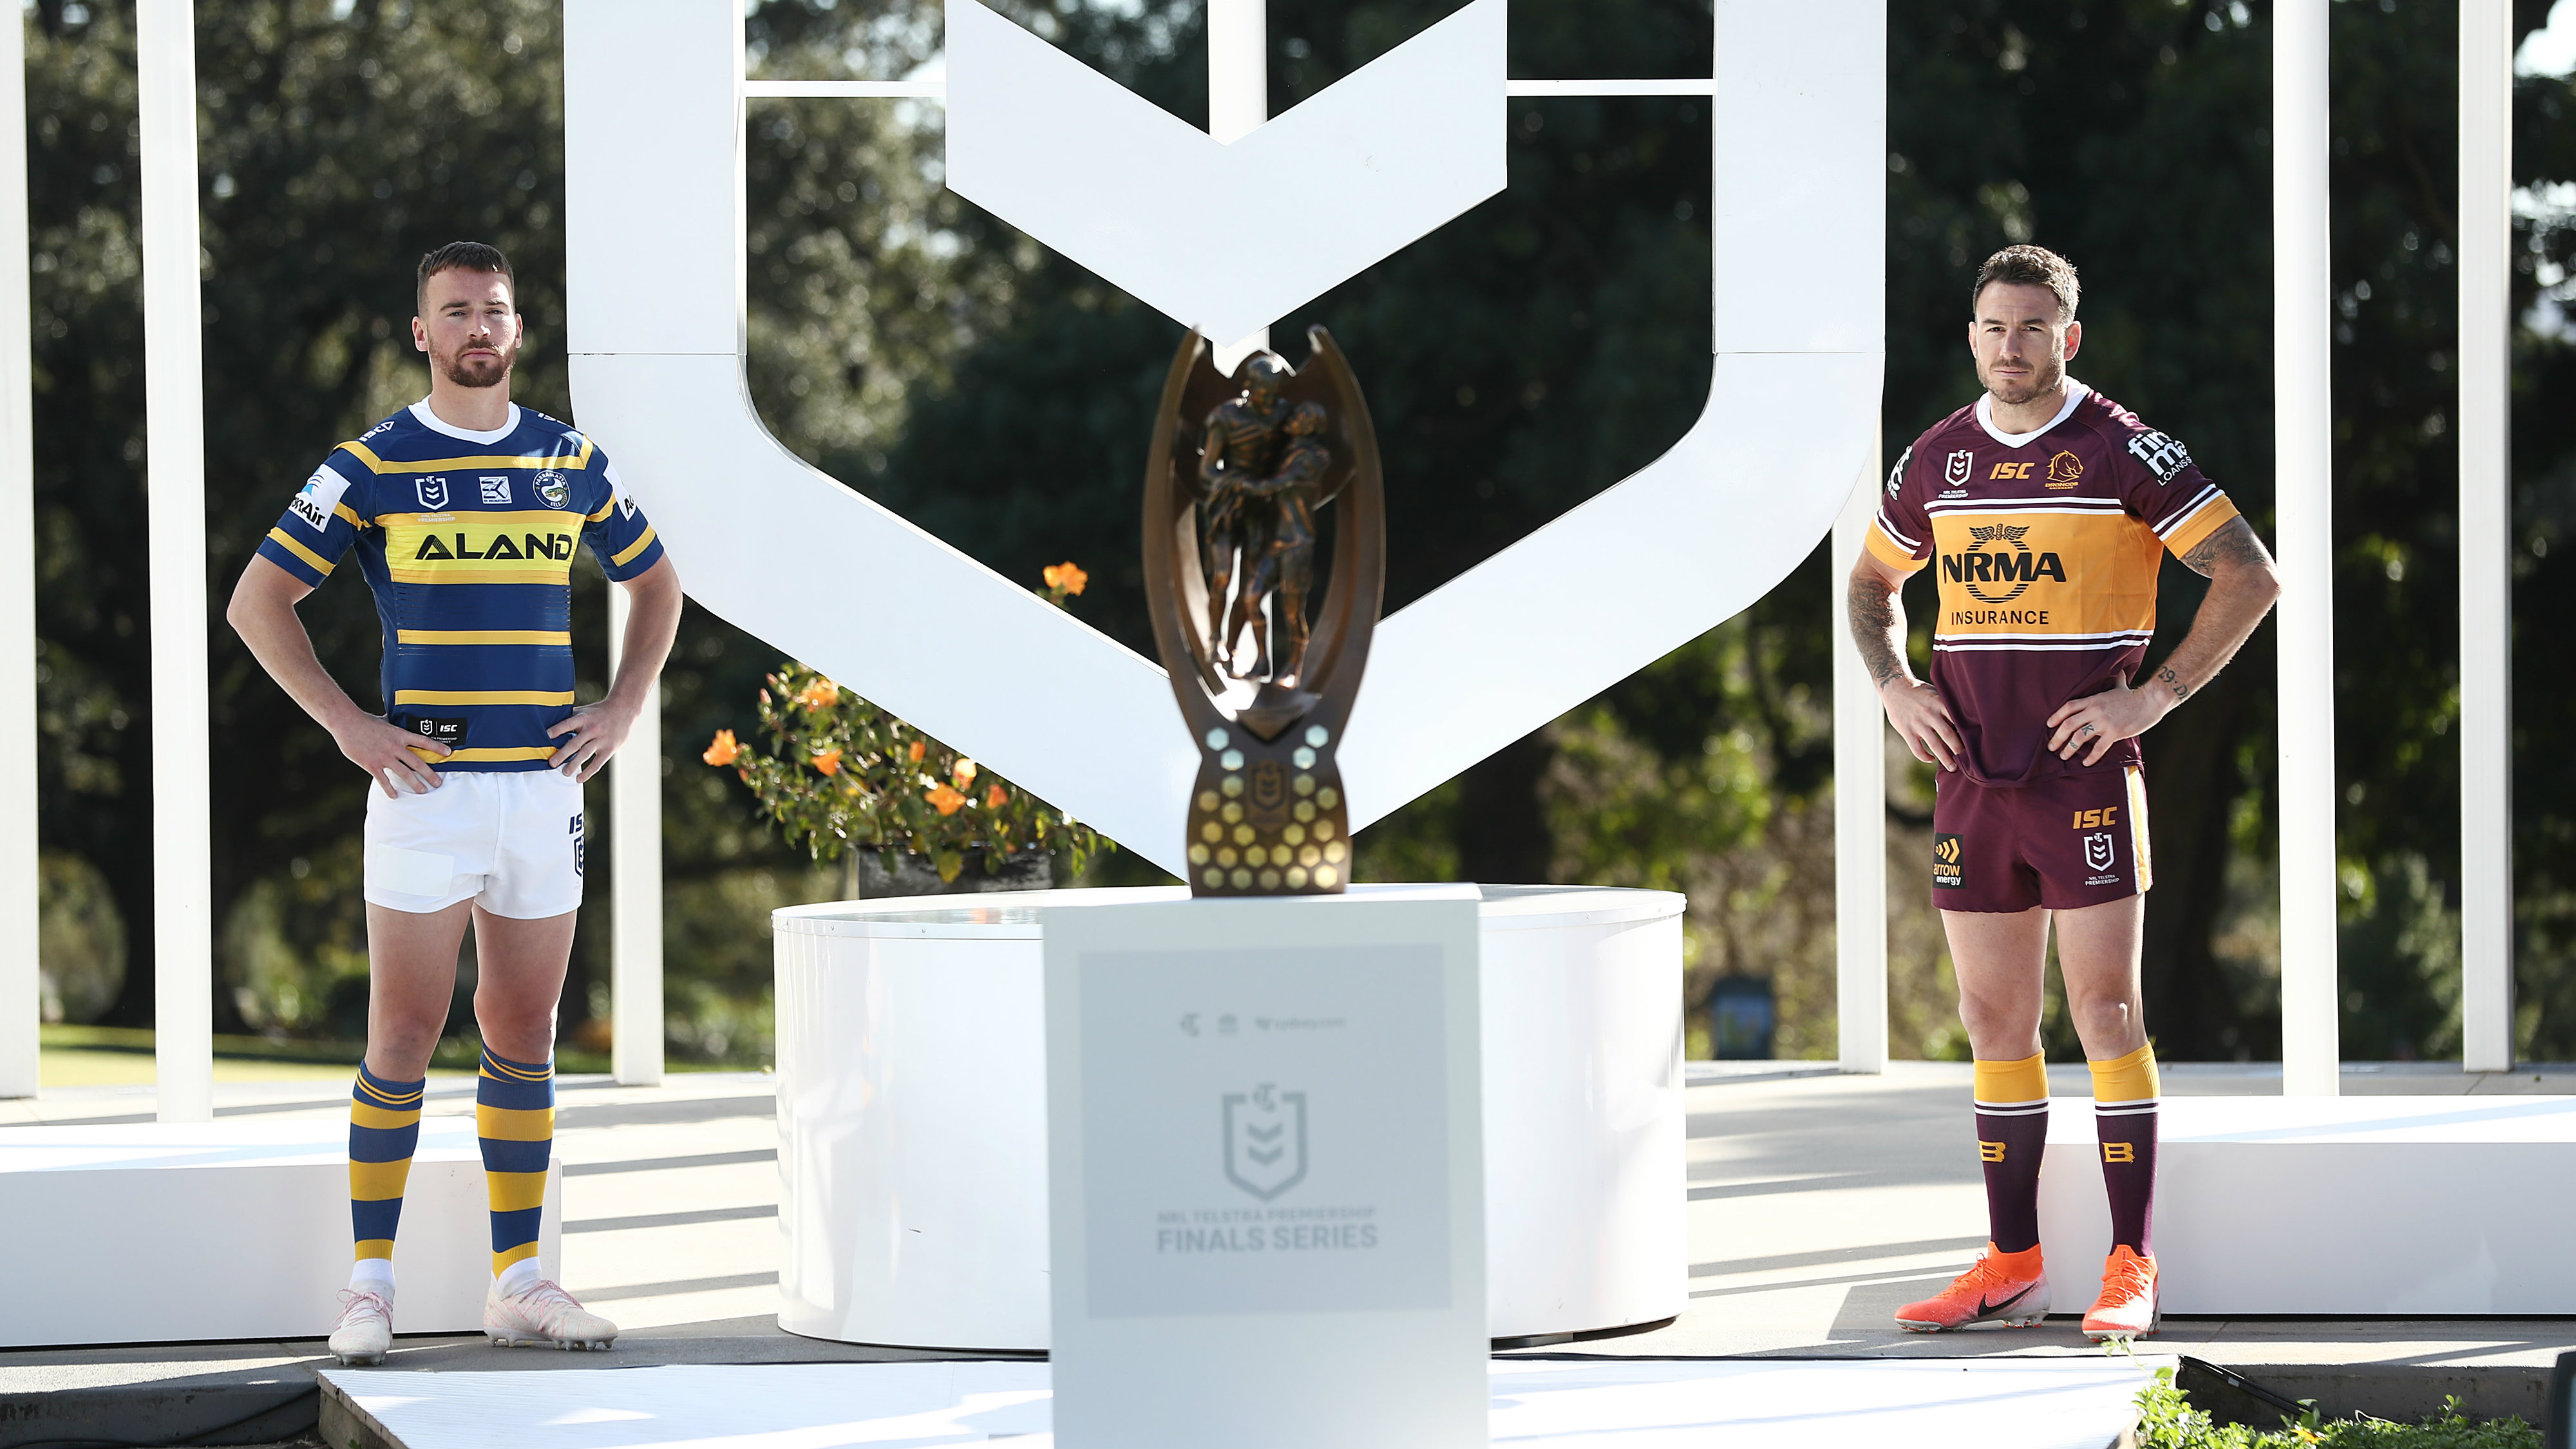 Parramatta Eels captain Clint Gutherson not content with top eight finish ahead of Brisbane Broncos clash